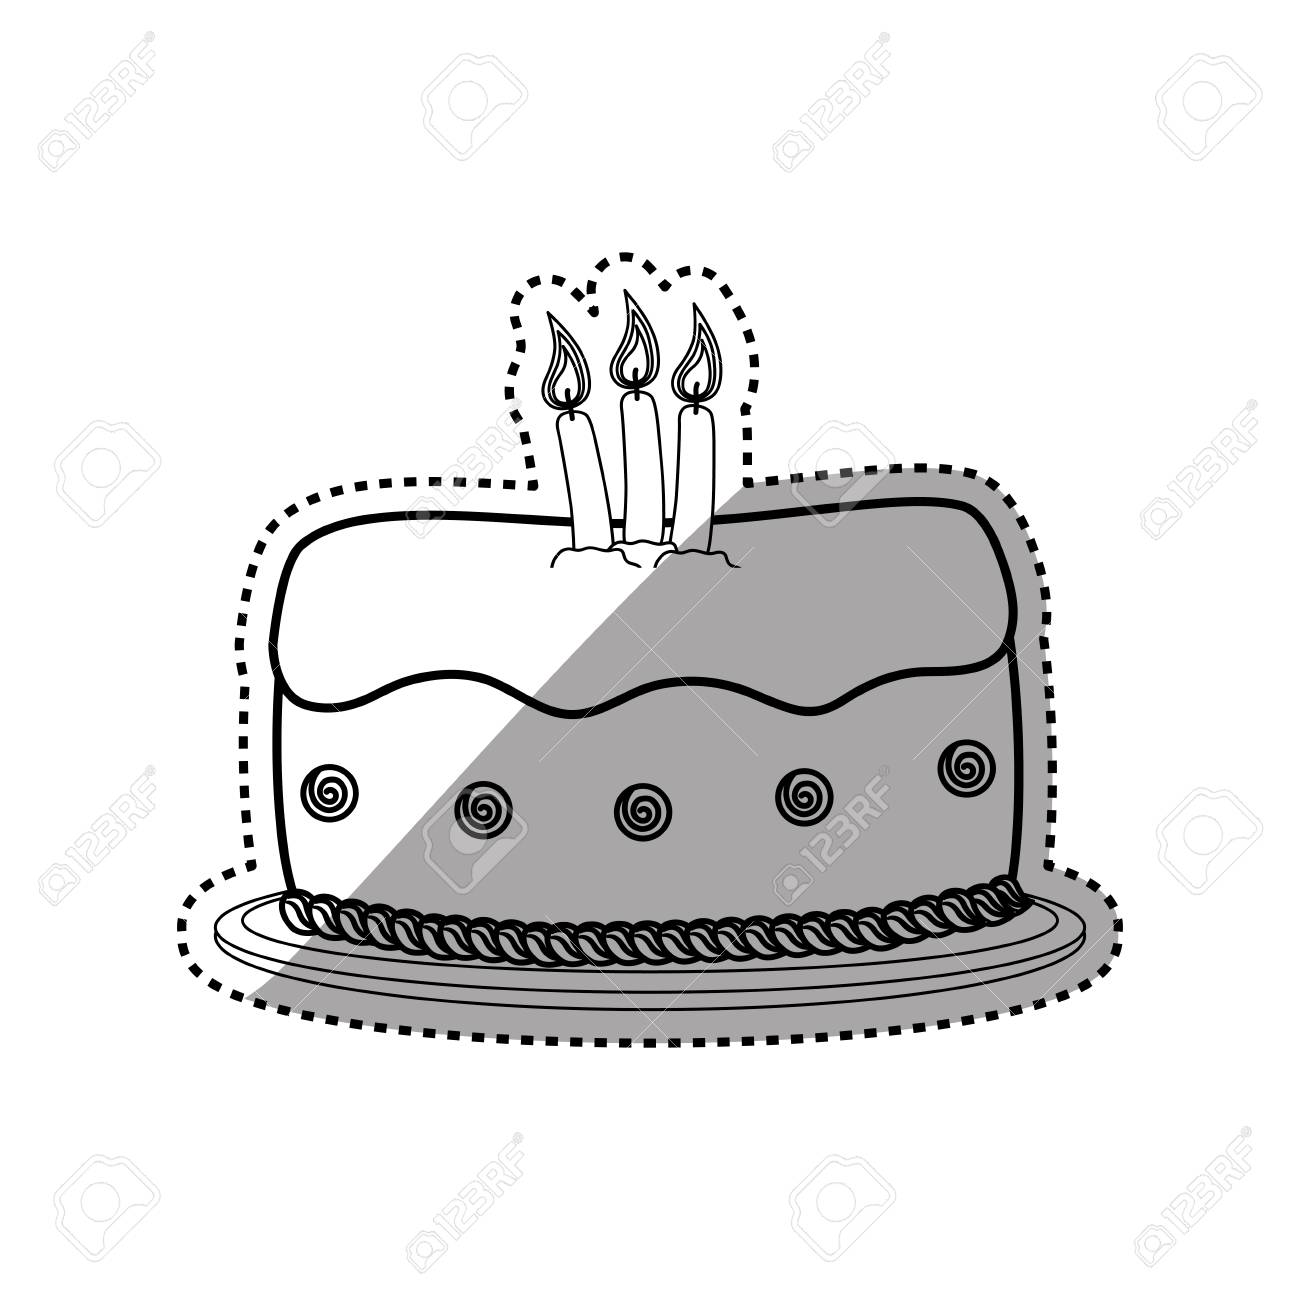 Delicious Birthday Cake Icon Illustration Graphic Design Royalty Free Cliparts Vectors And Stock Illustration Image 72225263